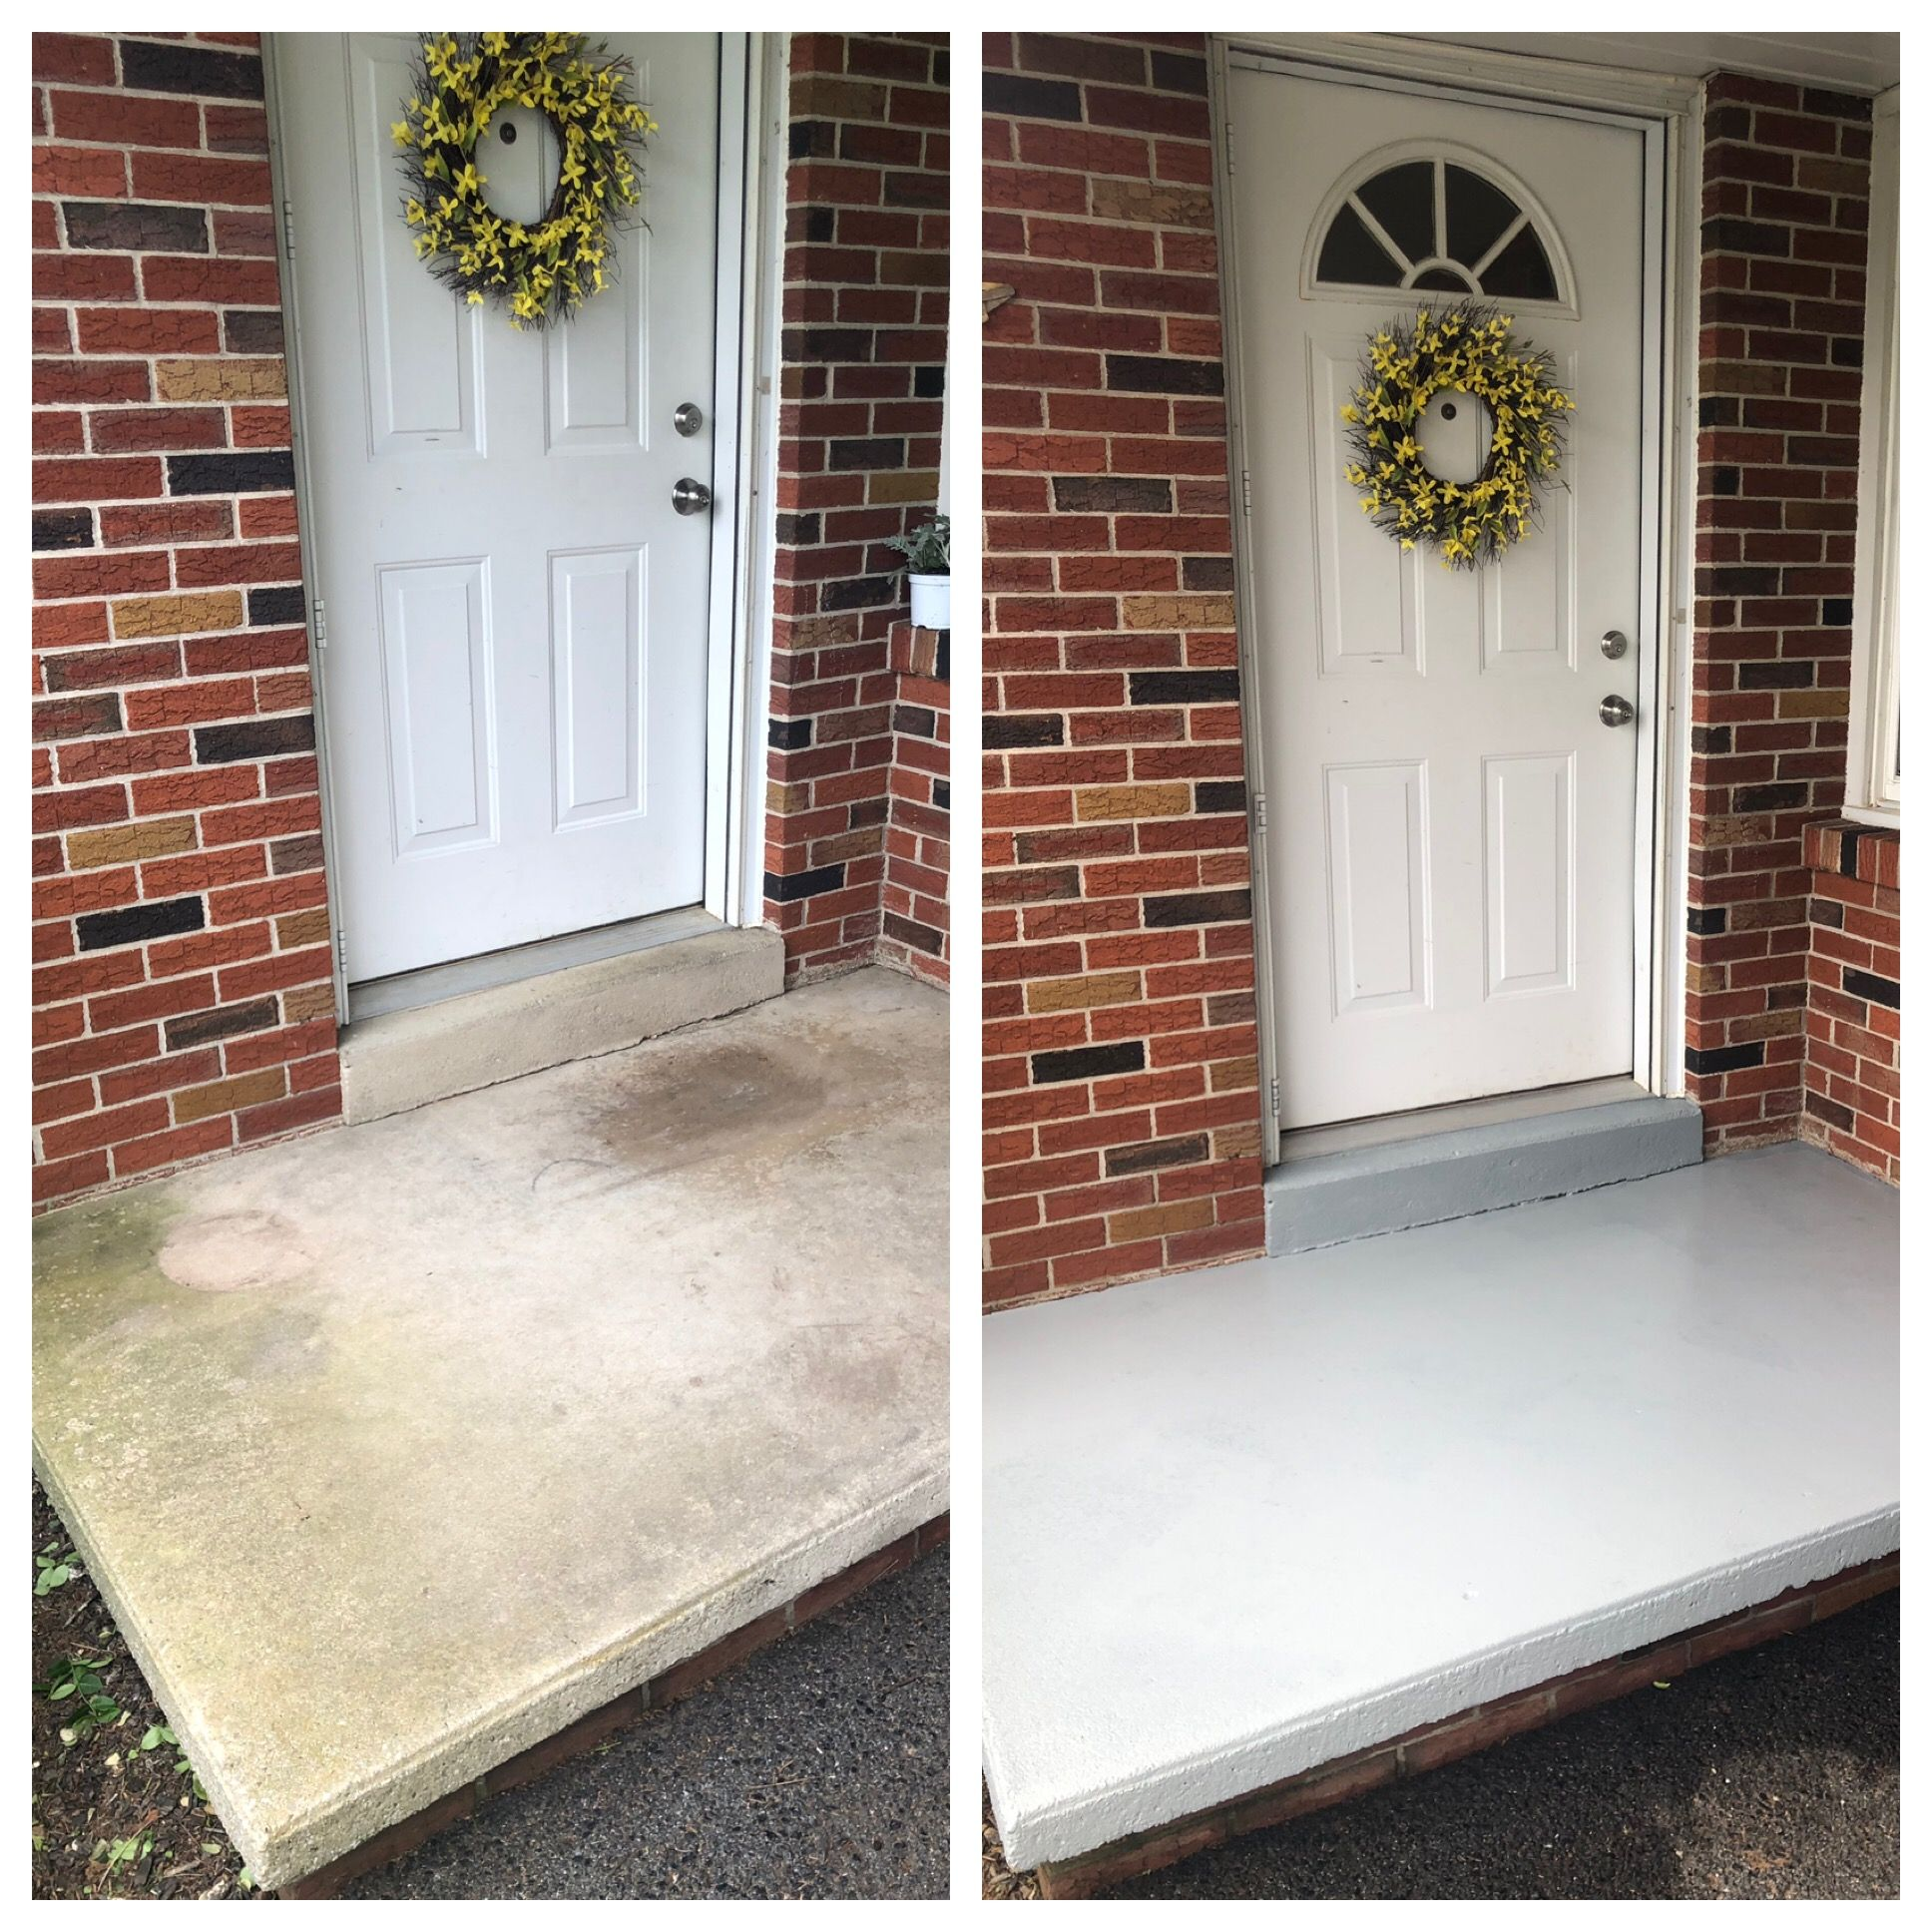 Painting Concrete Painted Concrete Porch Porch Paint Concrete Porch